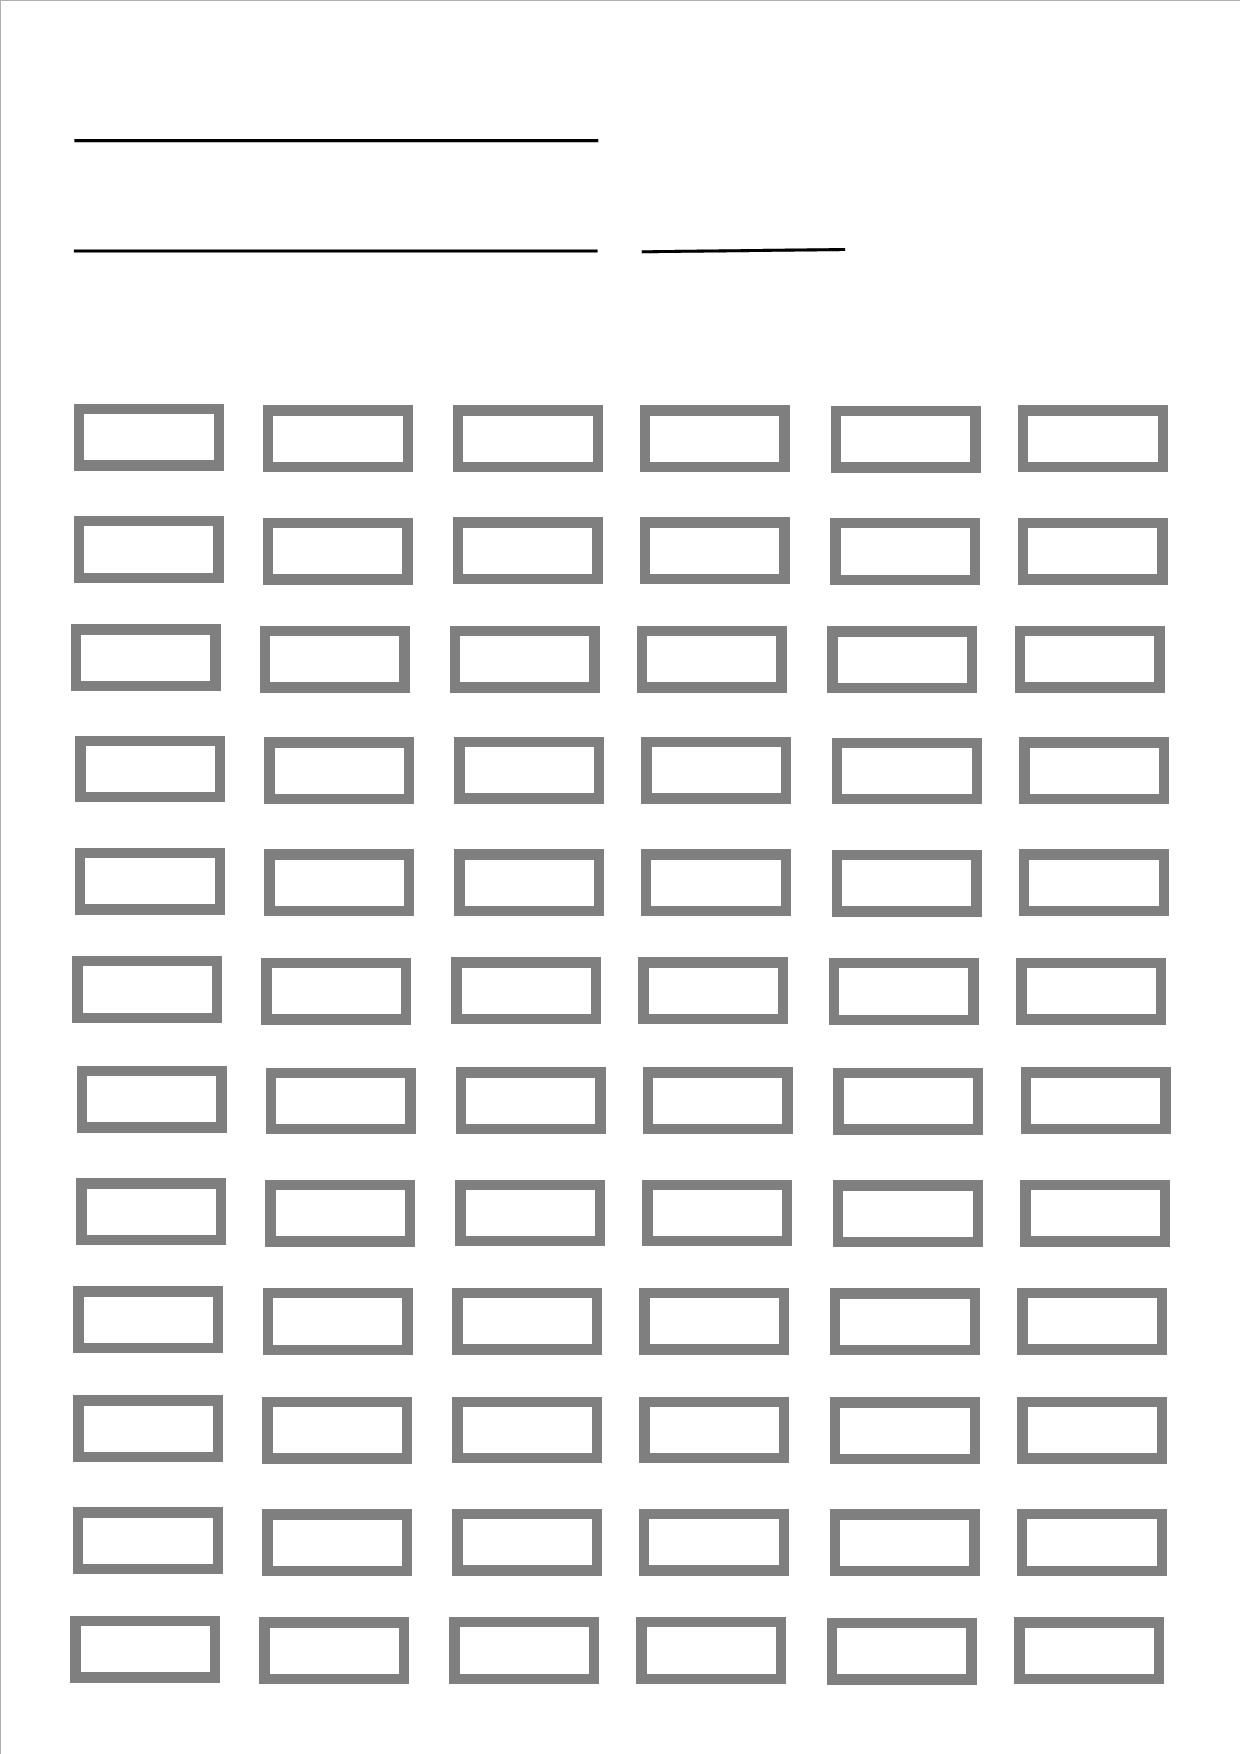 Blank Pencil Chart For Up To 72 Pencils Prints A4 Size